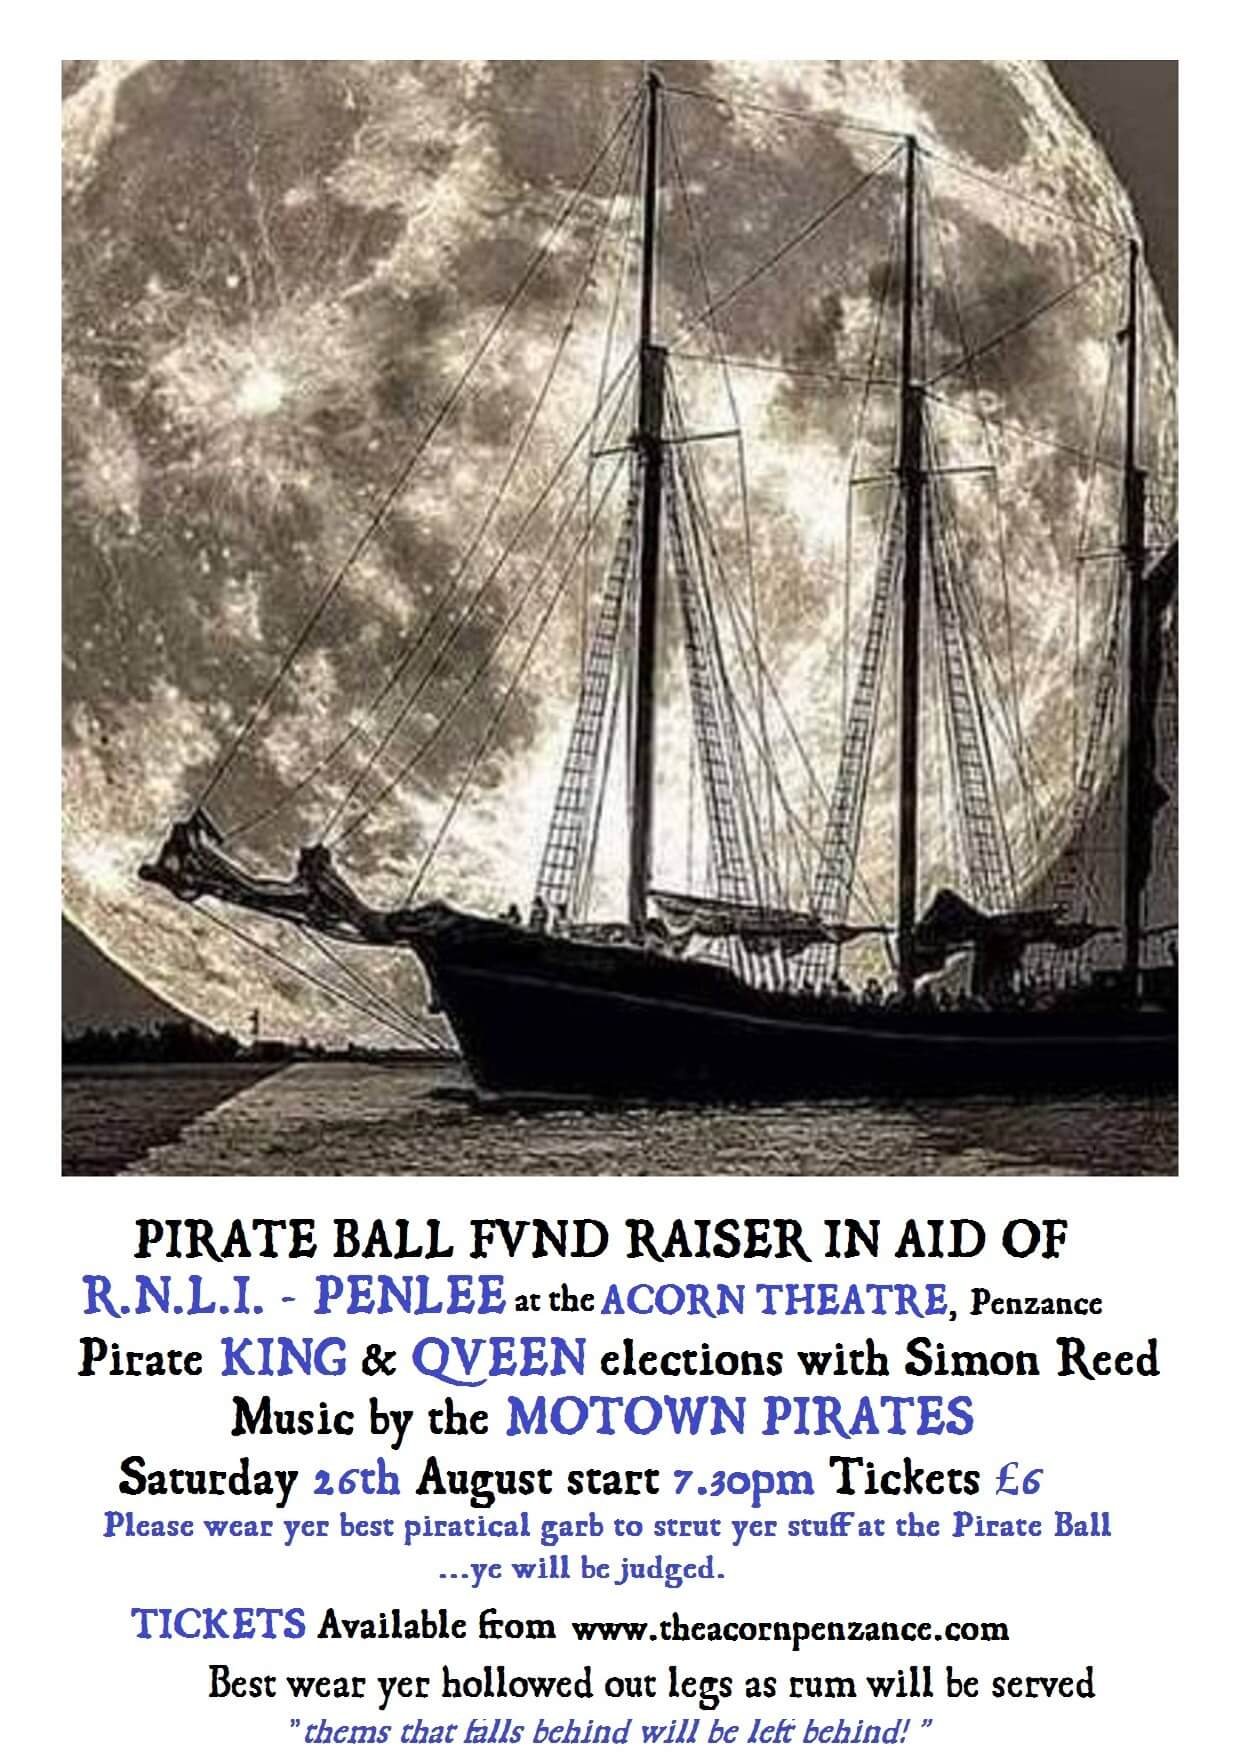 The Pirate Ball